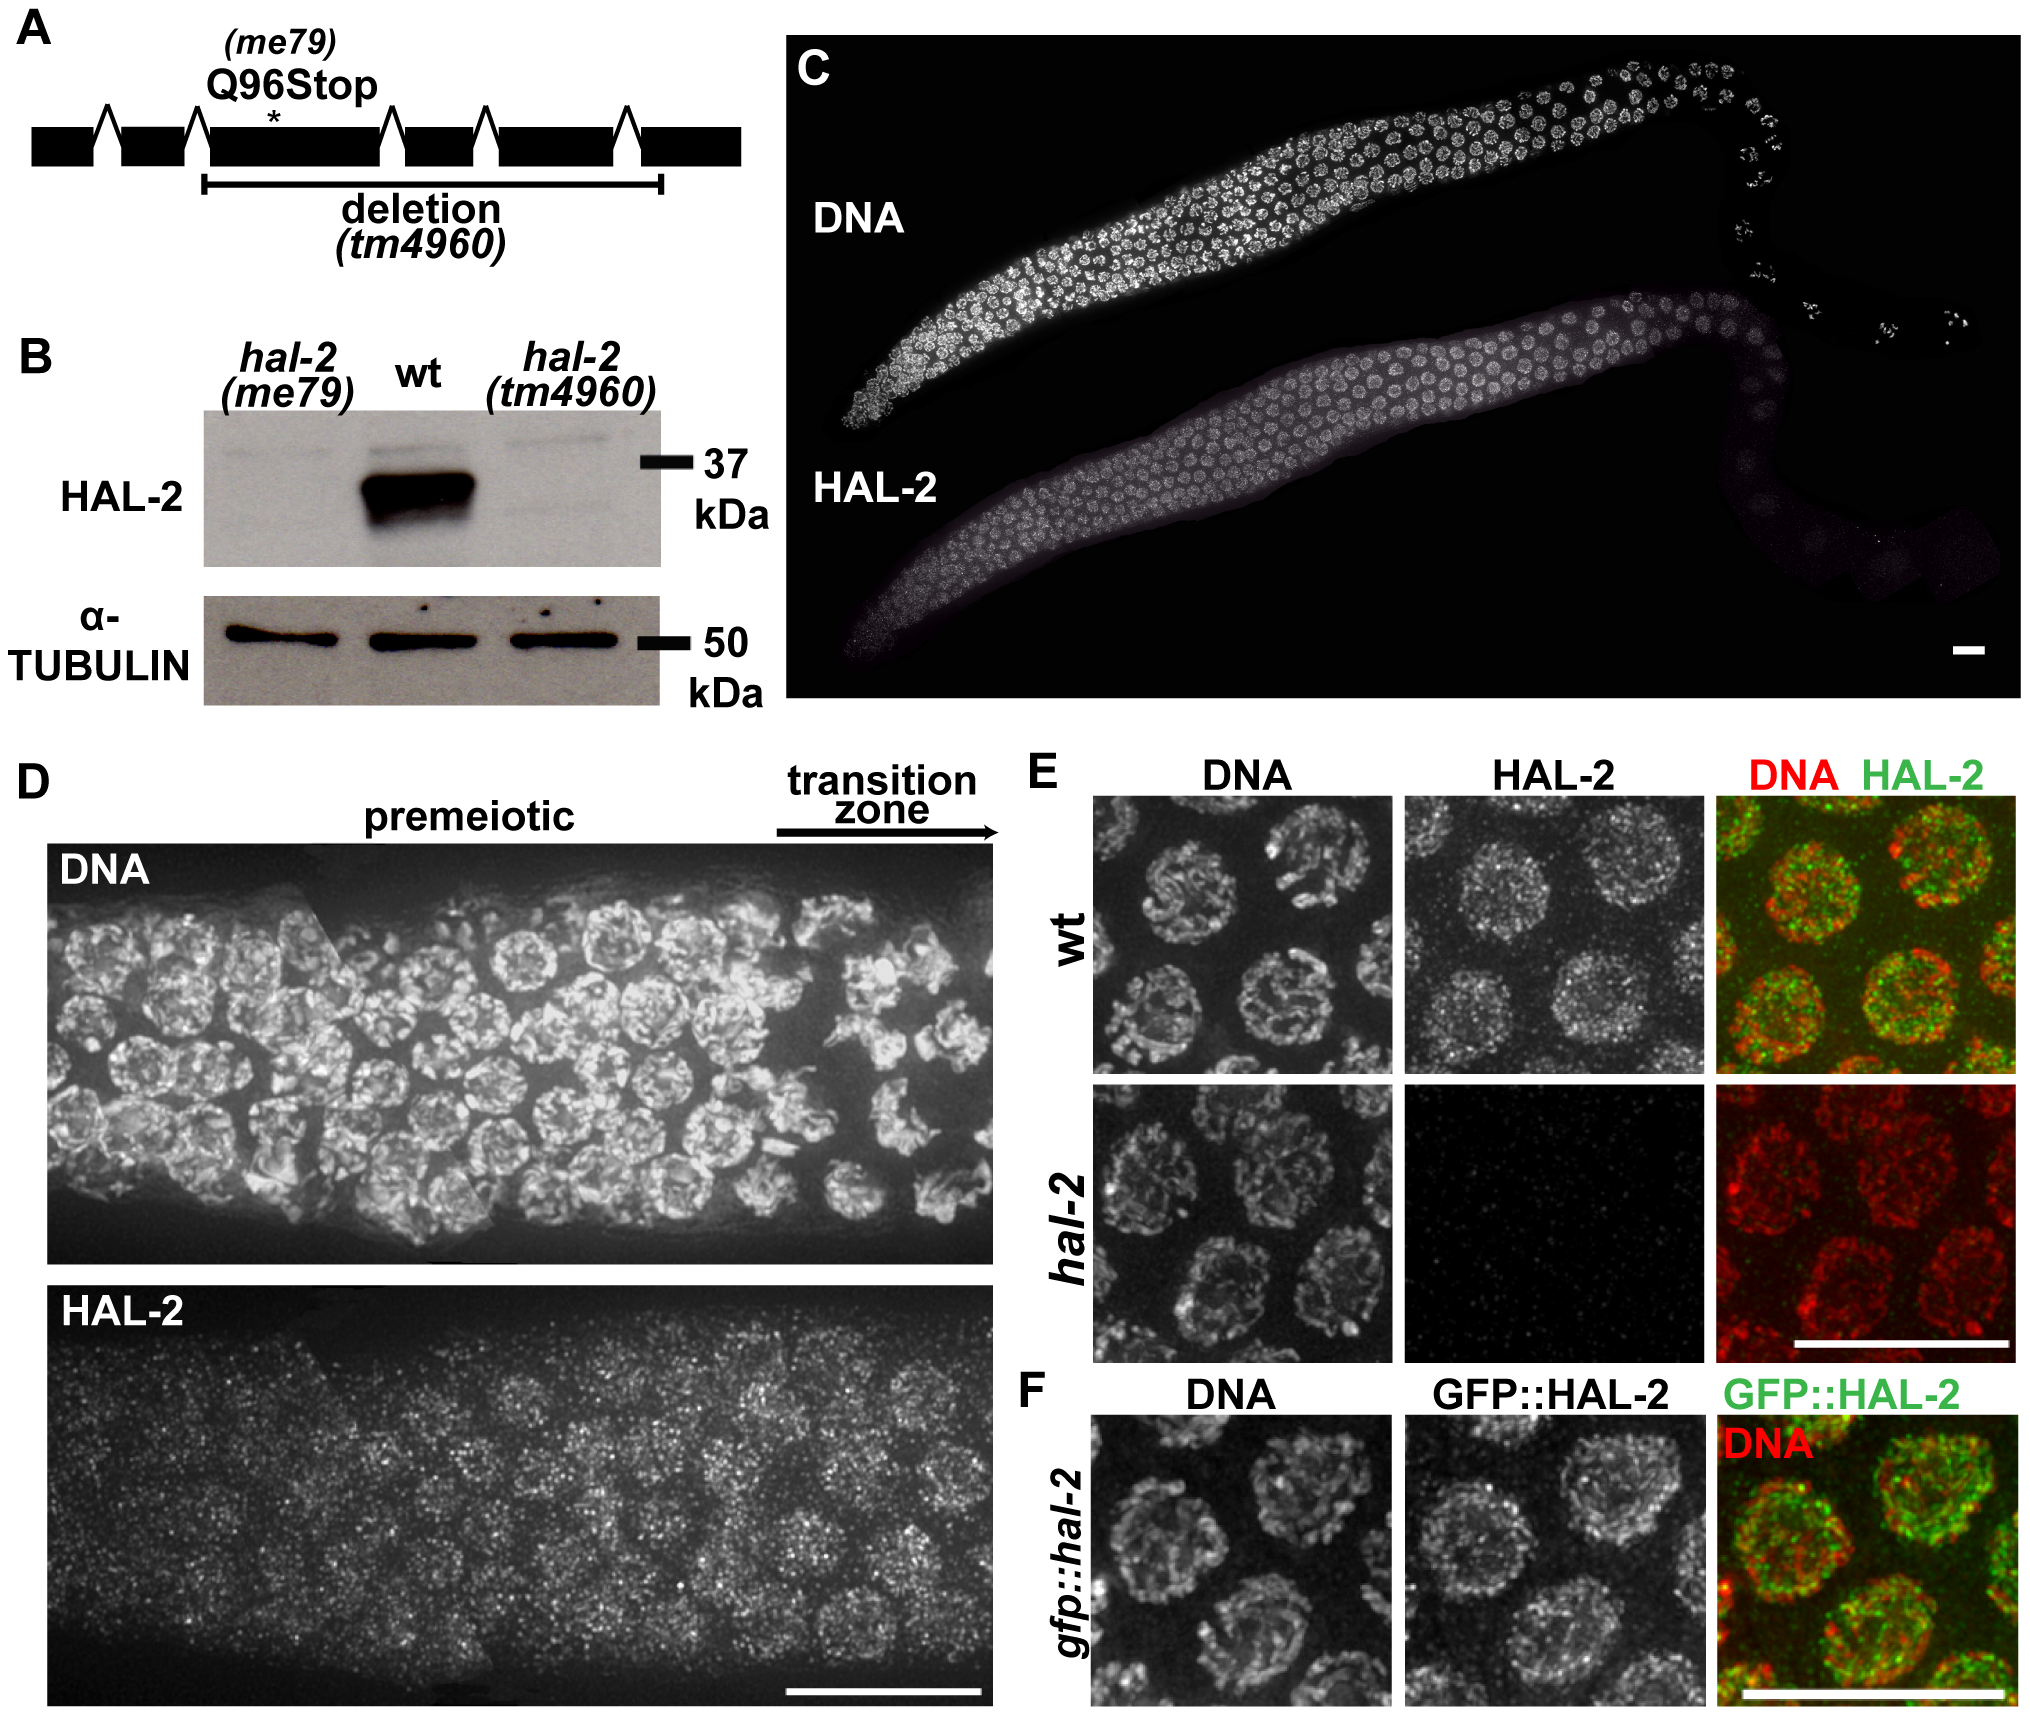 <i>hal-2</i> encodes a protein that concentrates in the nucleoplasm of germ cells.